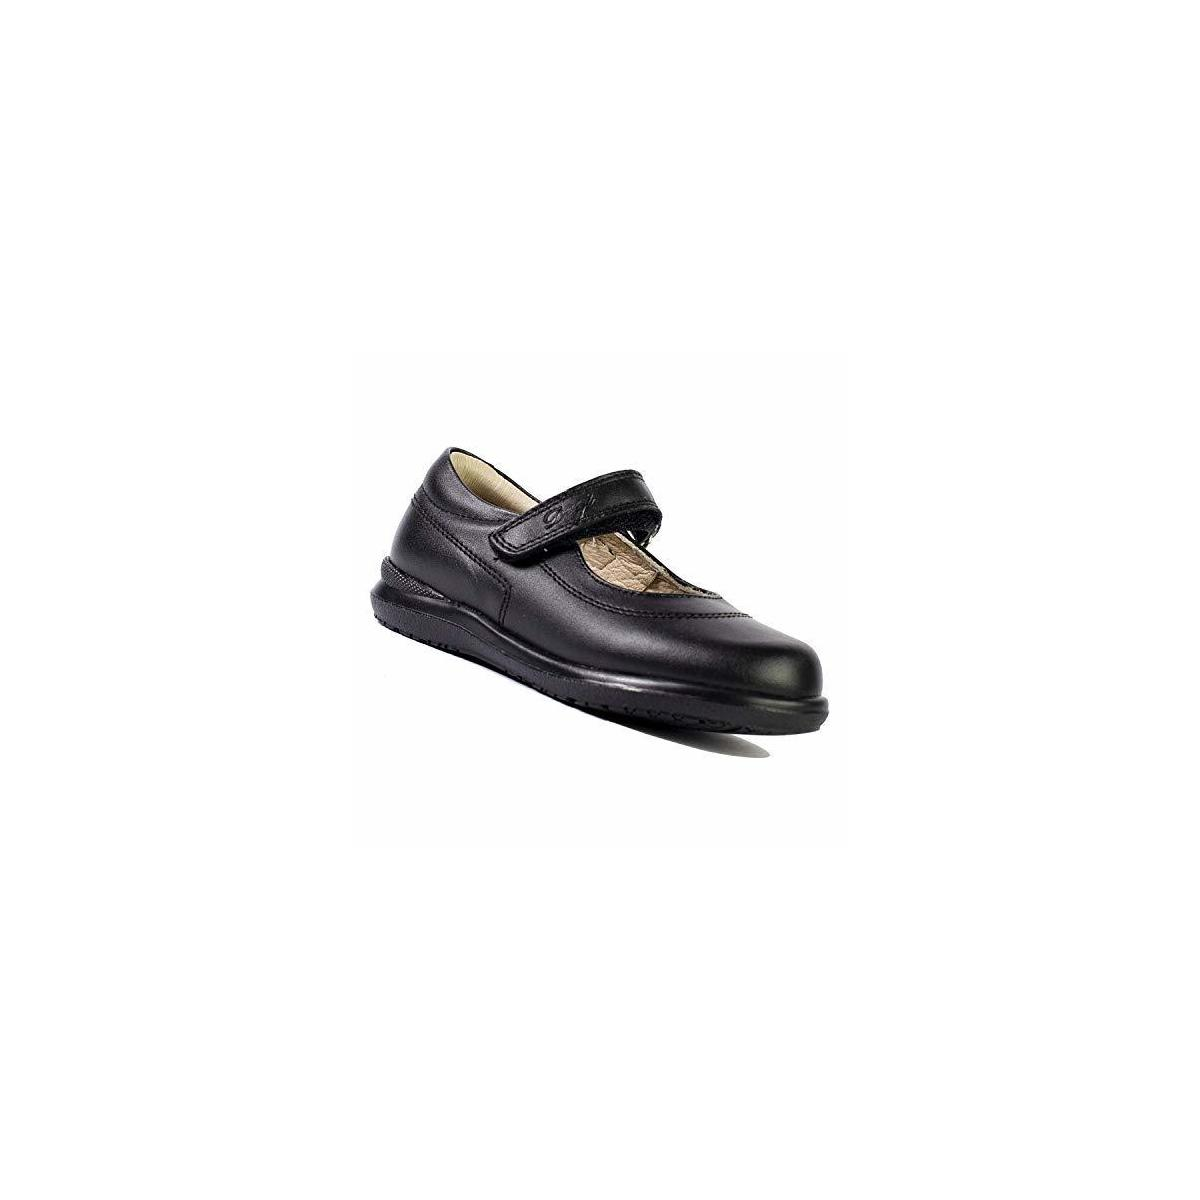 DOGI Mary Jane Round Toe Shoes - Leather Girl's Velcro Strap School Uniform Dress Shoe with Shock Absorbant Insole and Best Arch Support - Mimi